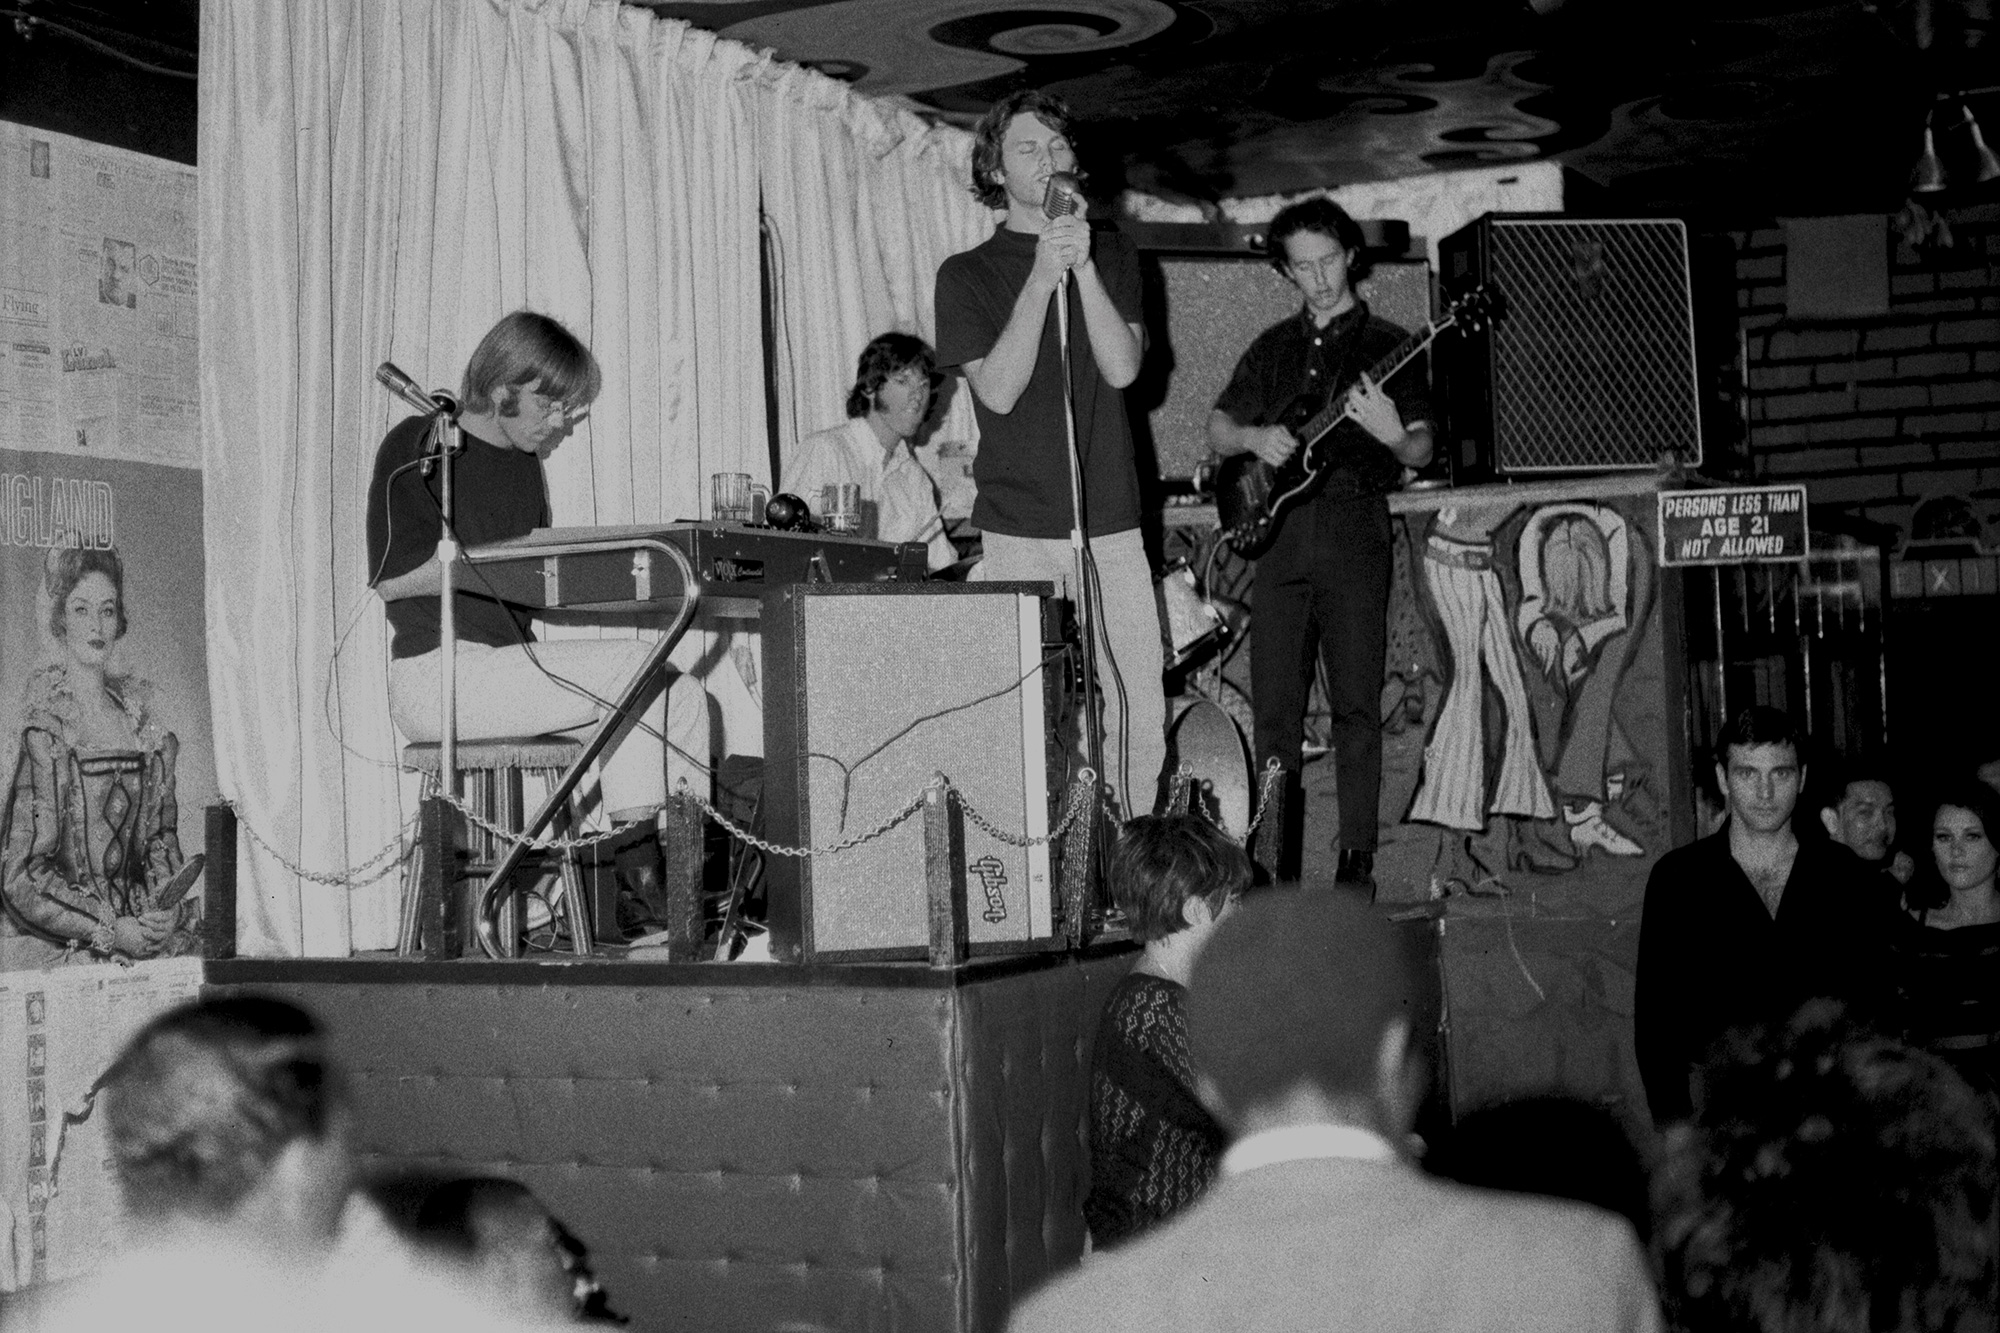 The Doors at the London Fog, 1966